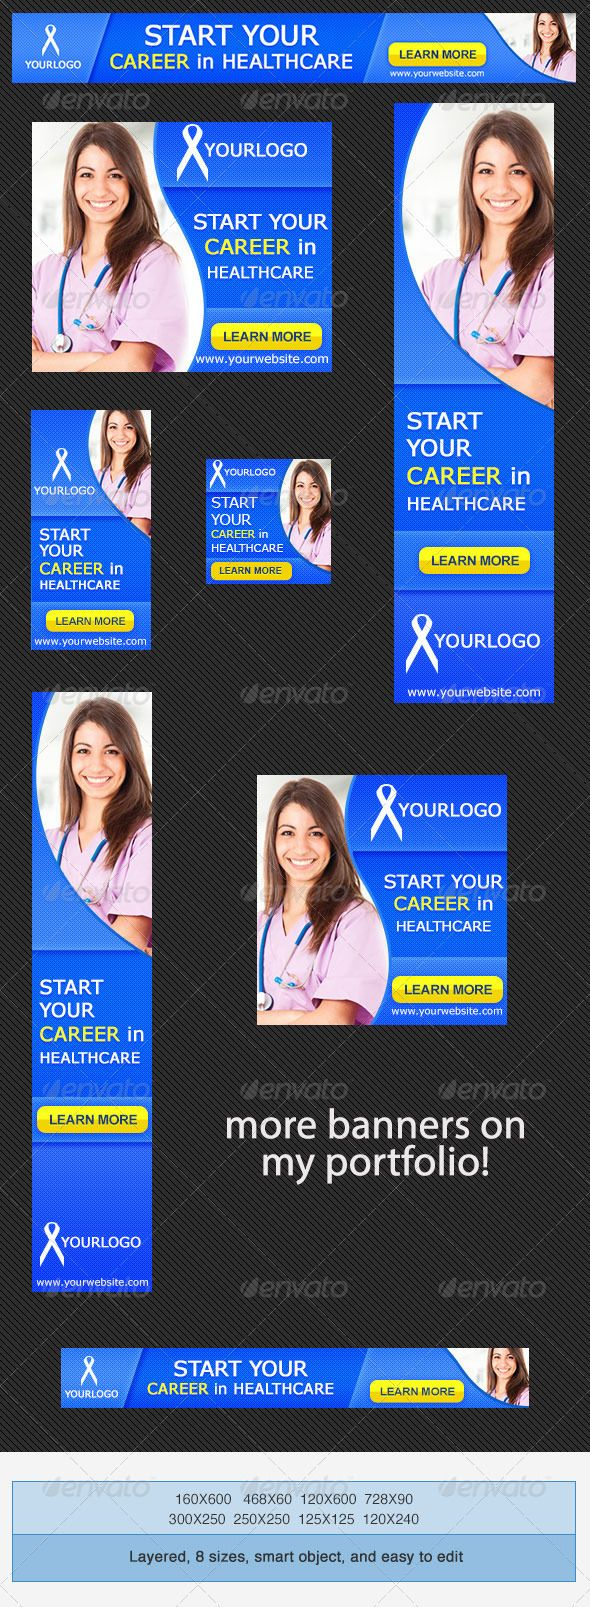 Medical Career Banner Ad Template – Career Assessment Template